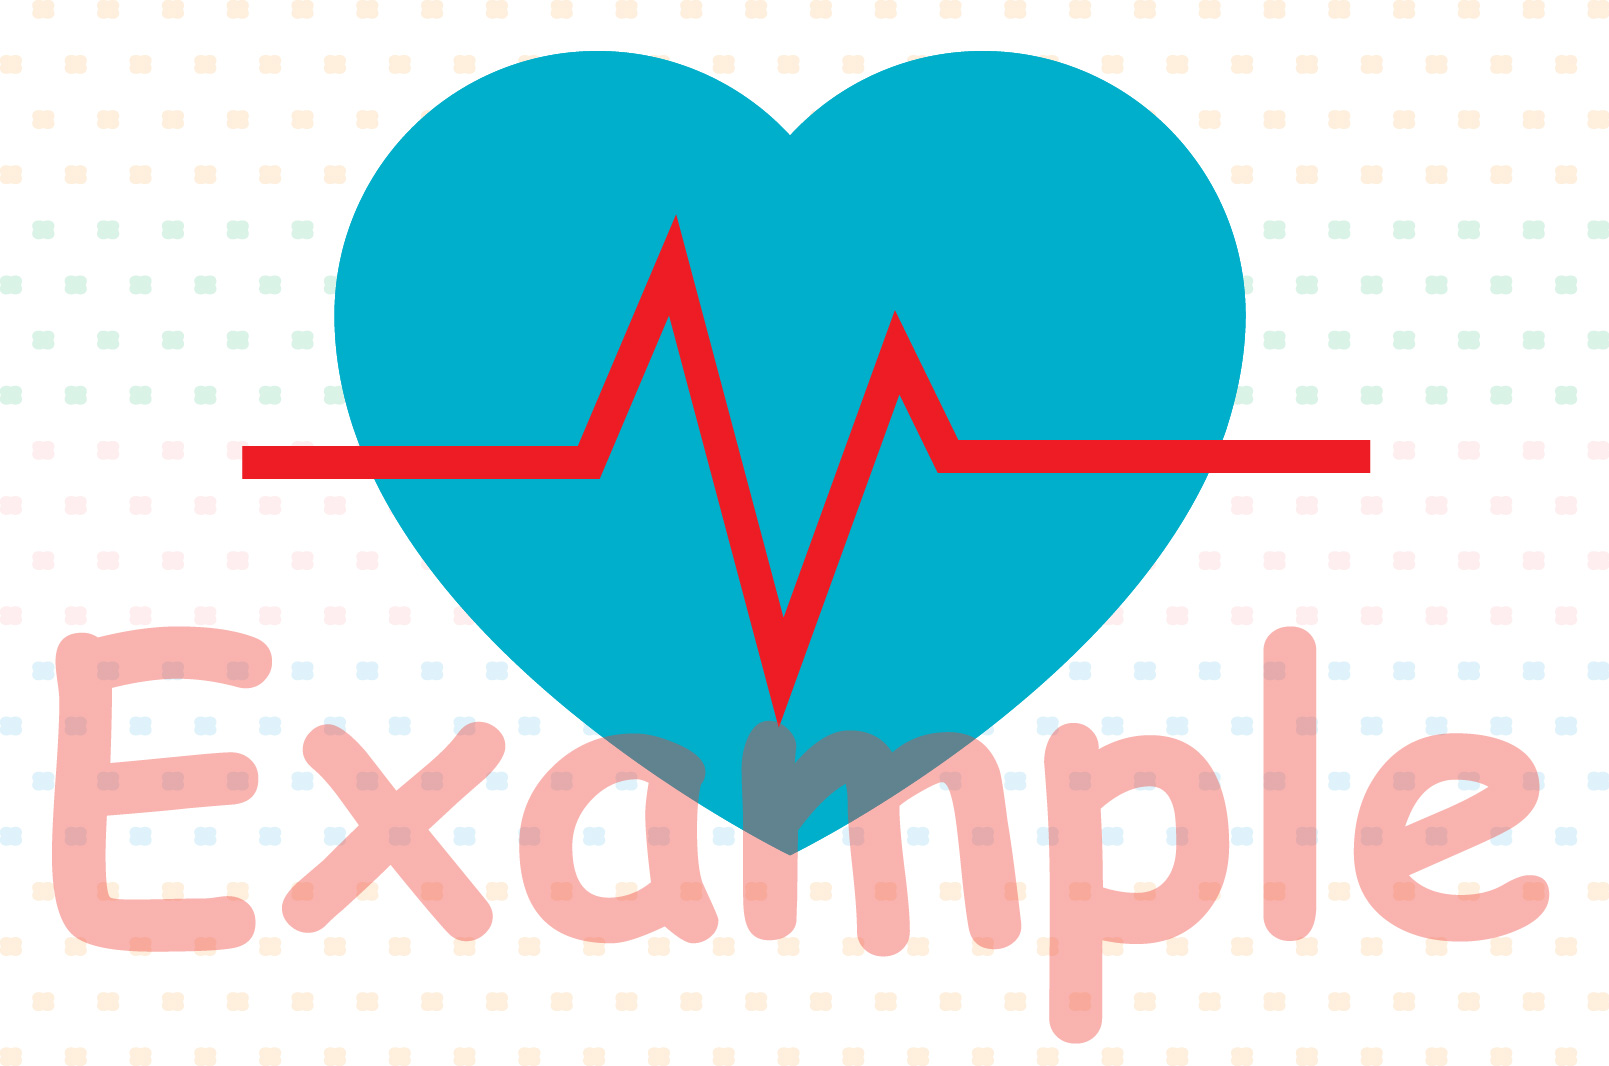 Doctor Medic Props Party Photo Booth SVG 206S example image 5